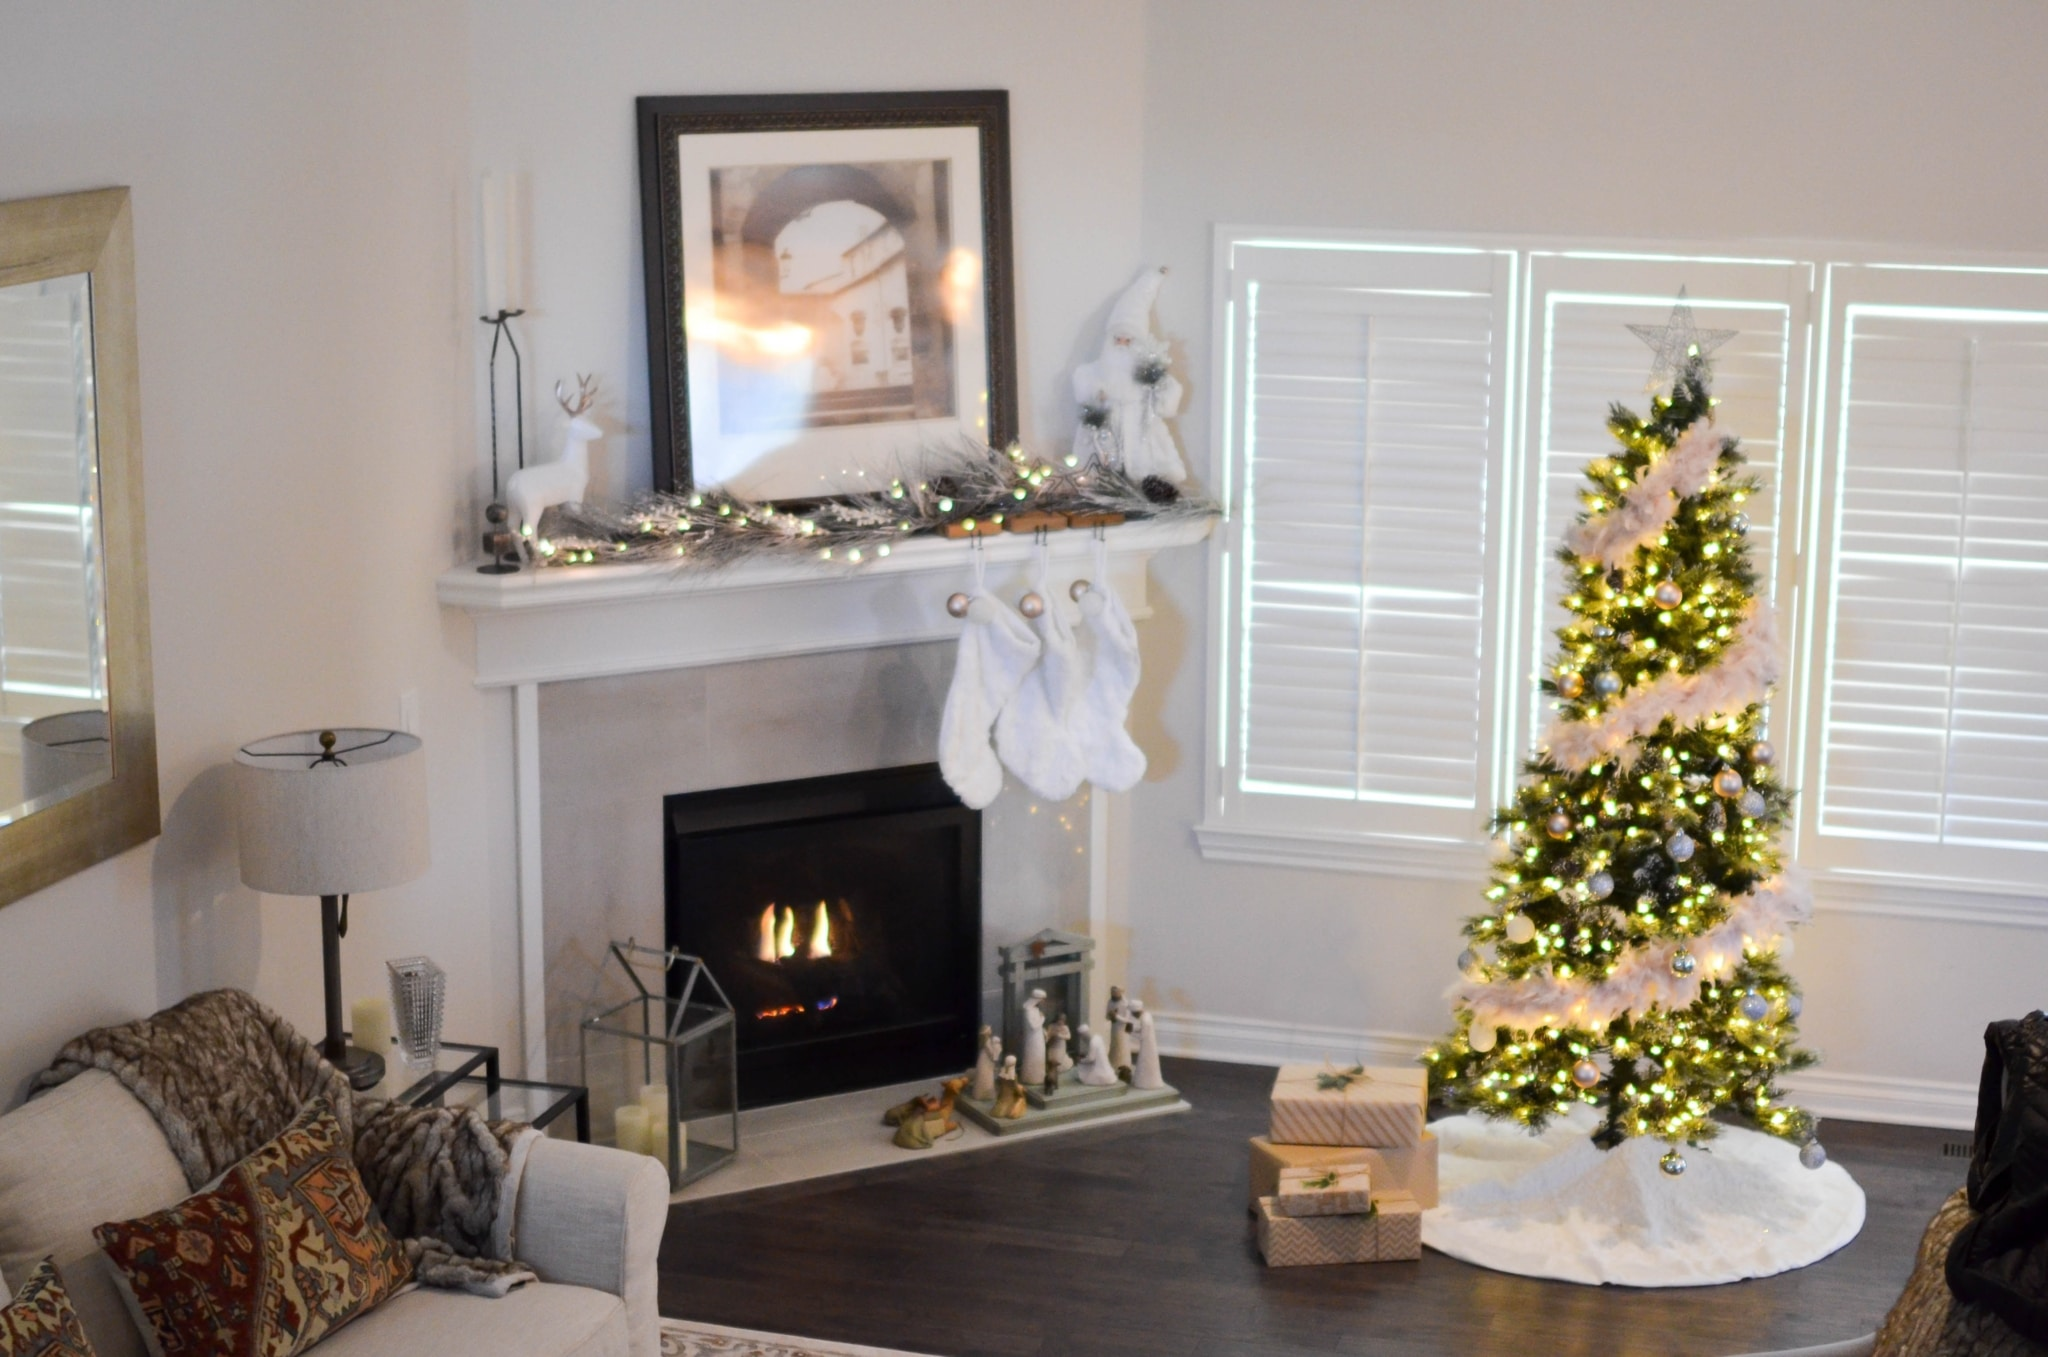 Christmas tree with string lights turned on near electric fireplace inside room